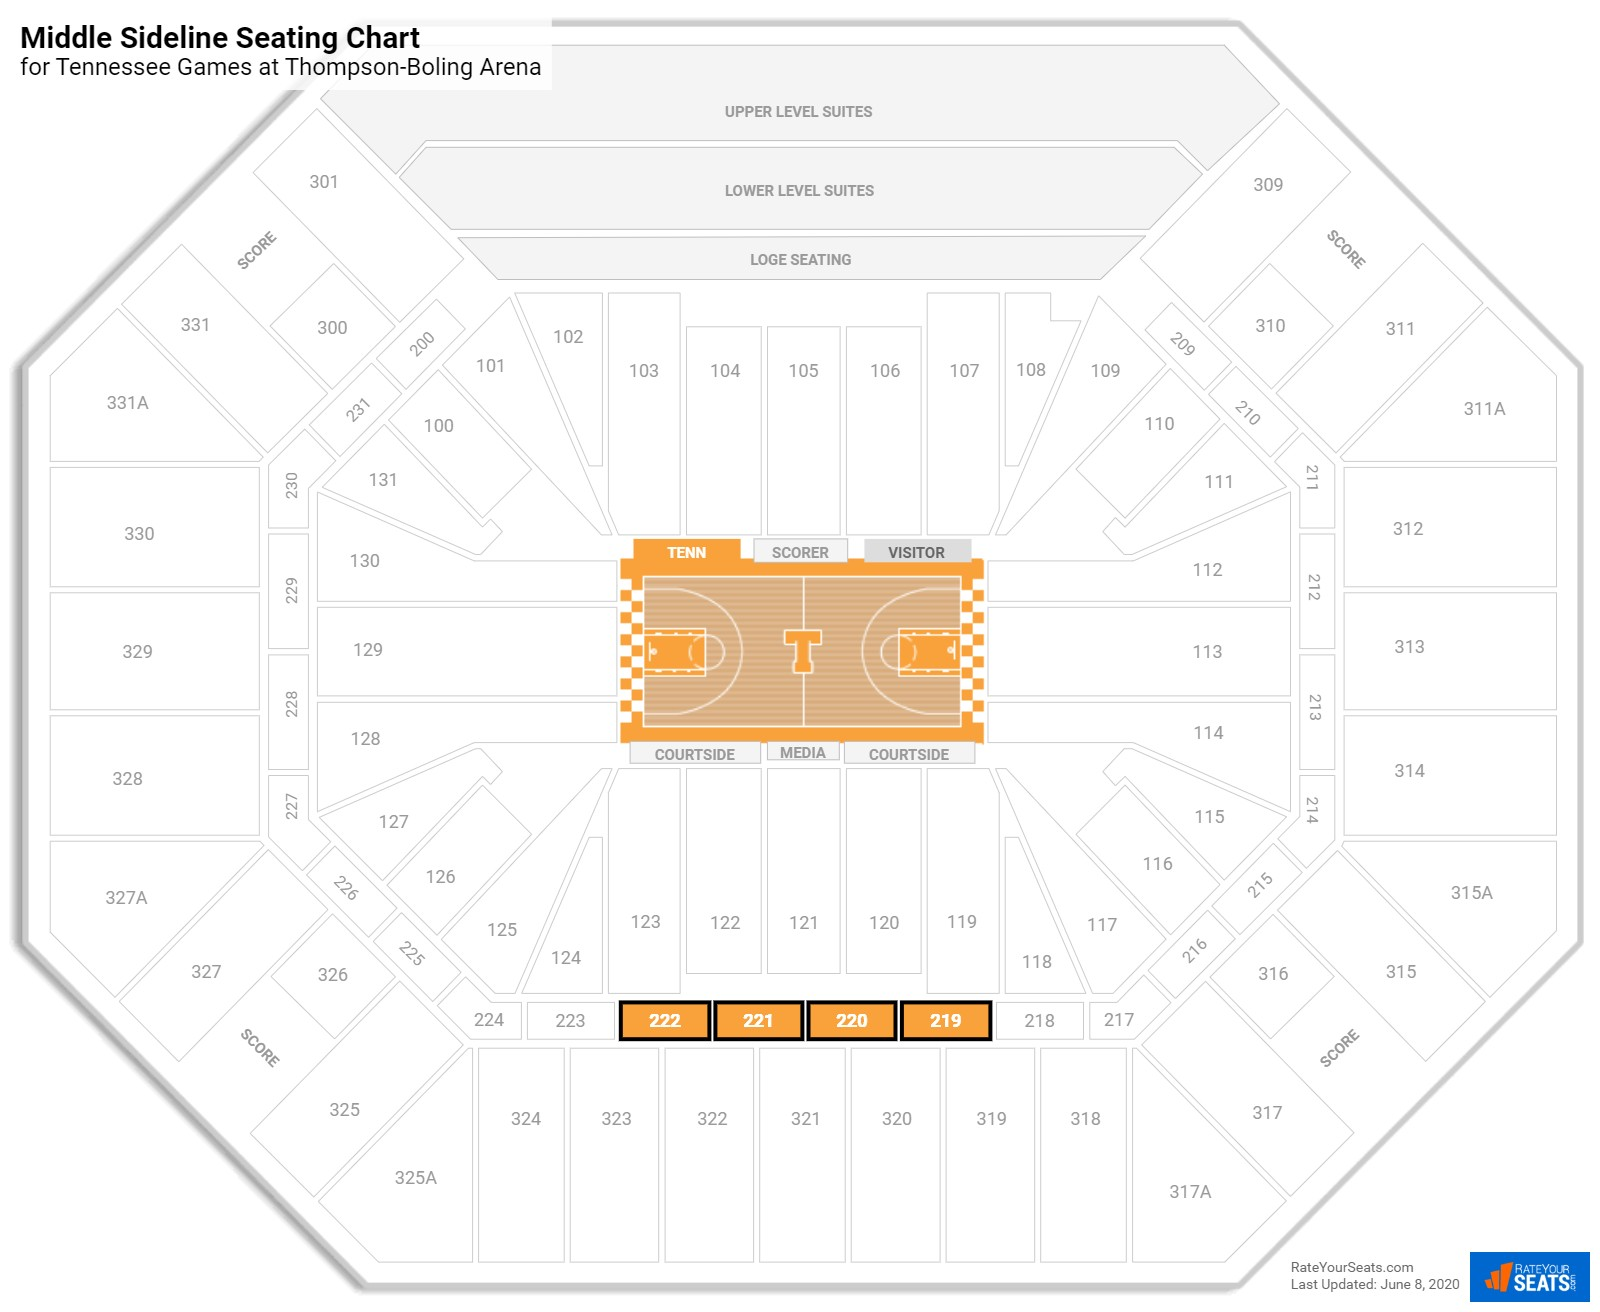 Thompson Boling Arena Middle Sideline Seating Chart